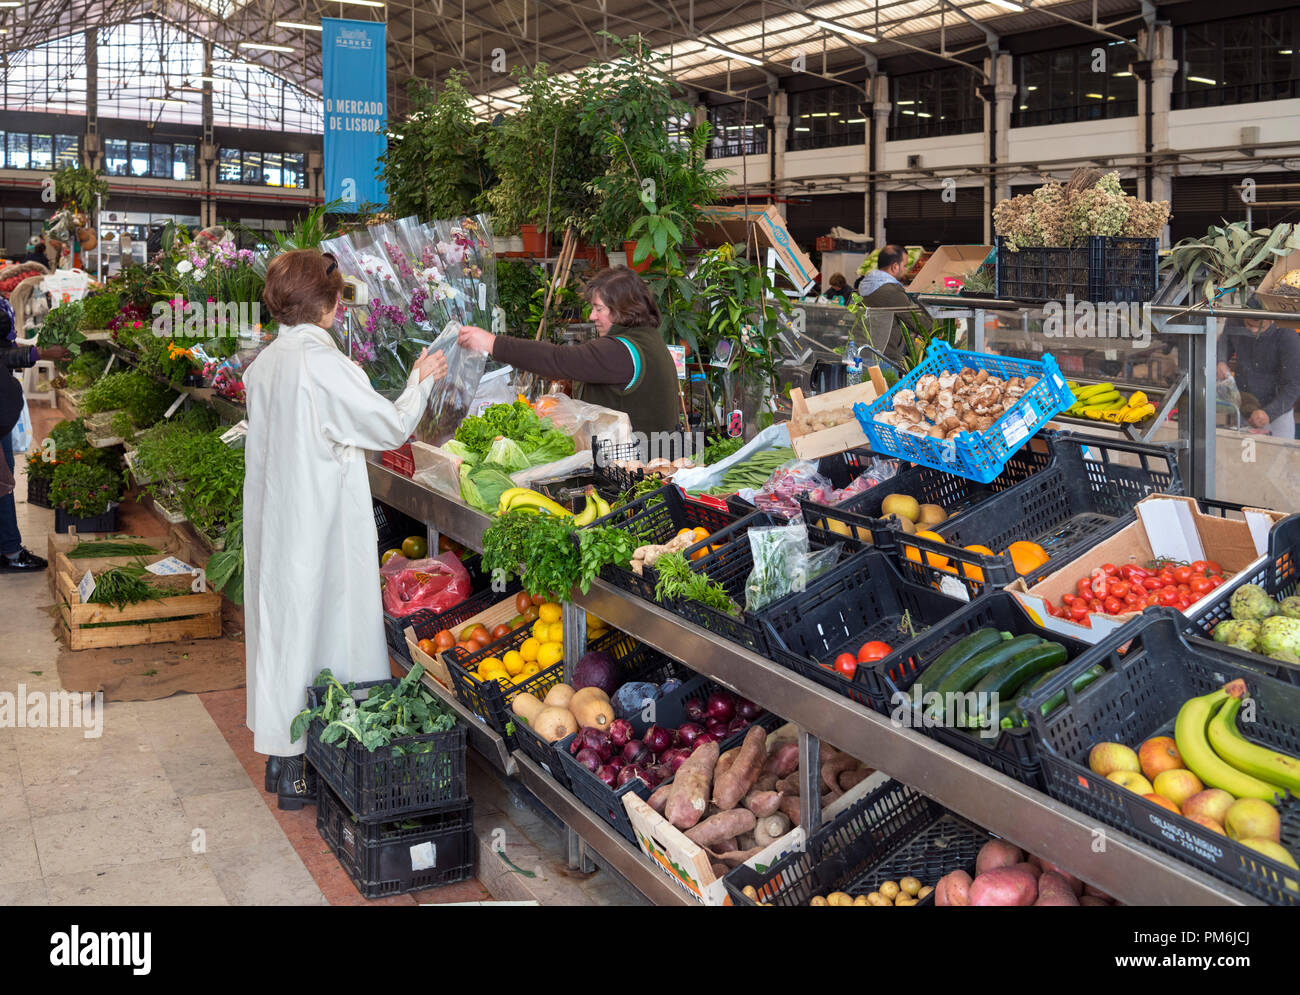 Woman buying produce at a fruit and vegetable market stall in the Mercado da Ribeira, Lisbon, Portugal - Stock Image